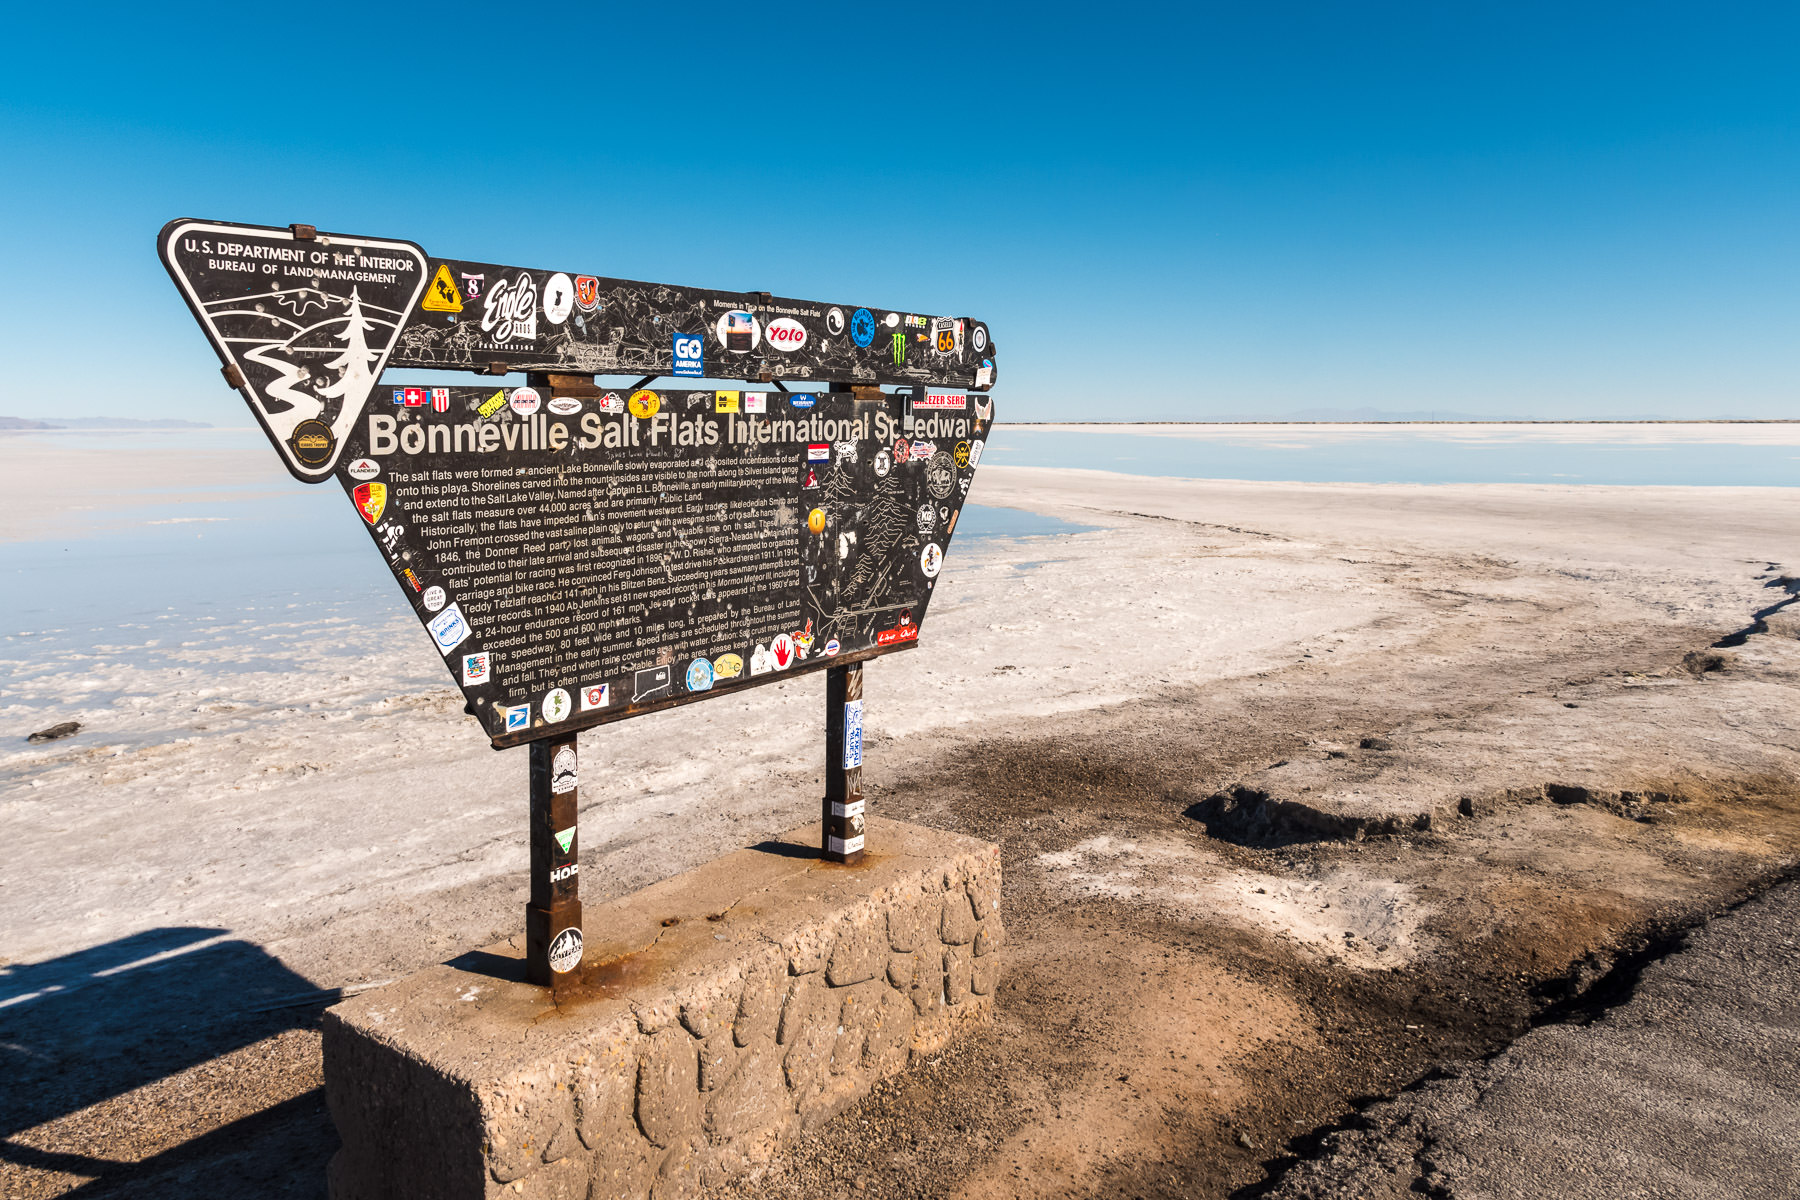 A sign at the Bonneville Salt Flats International Speedway in Utah explains the history of the site to visitors.